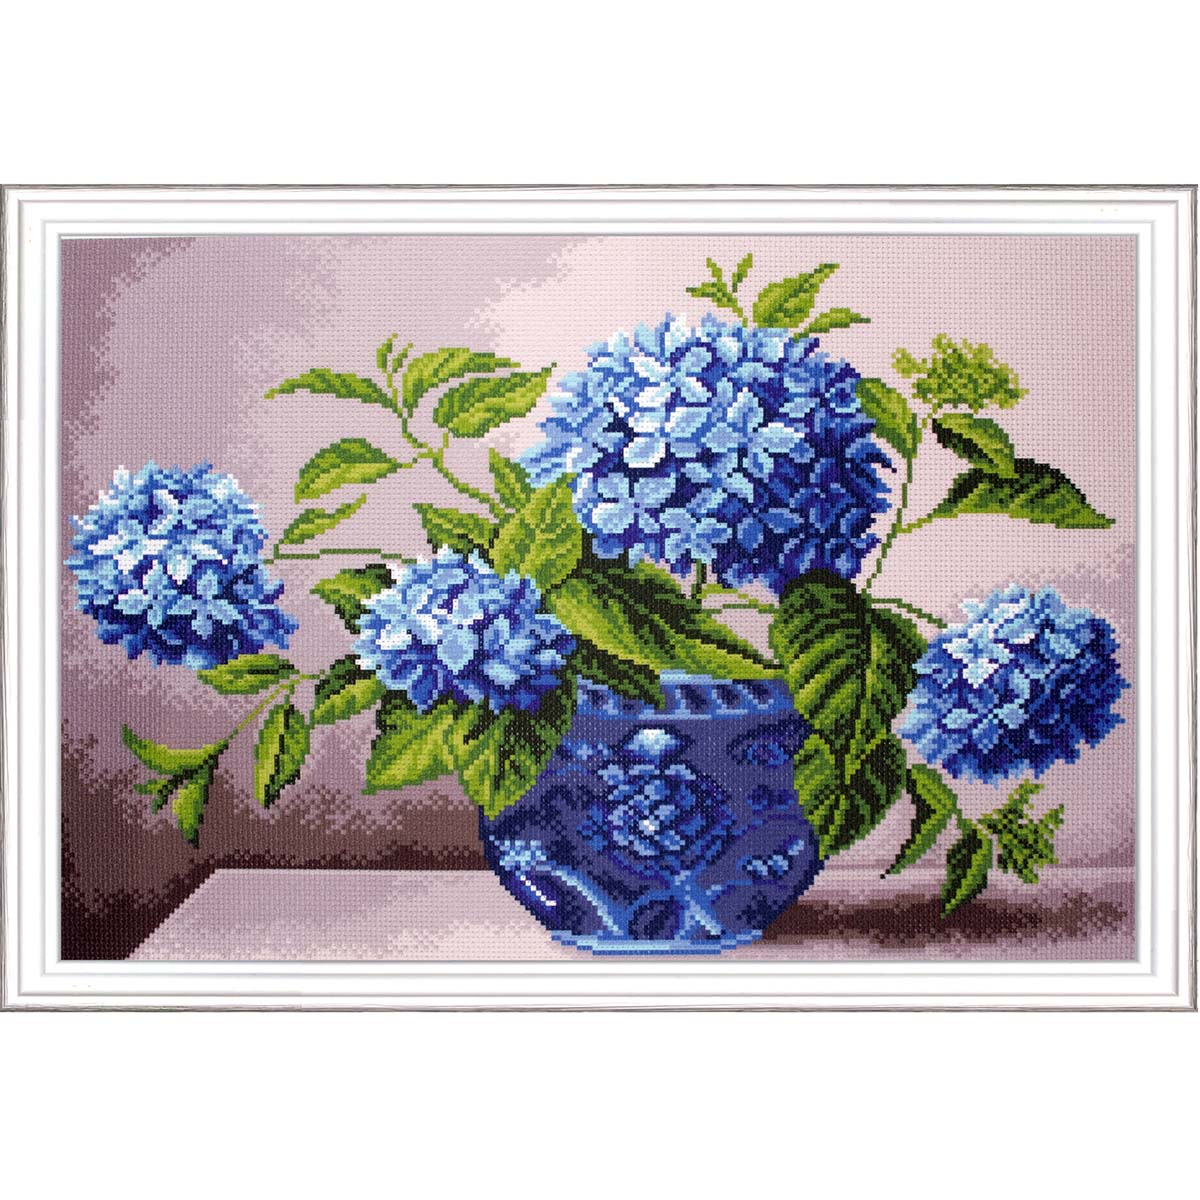 Collection D'Art Hydrangea in Vase Stamped Cross-Stitch Kit